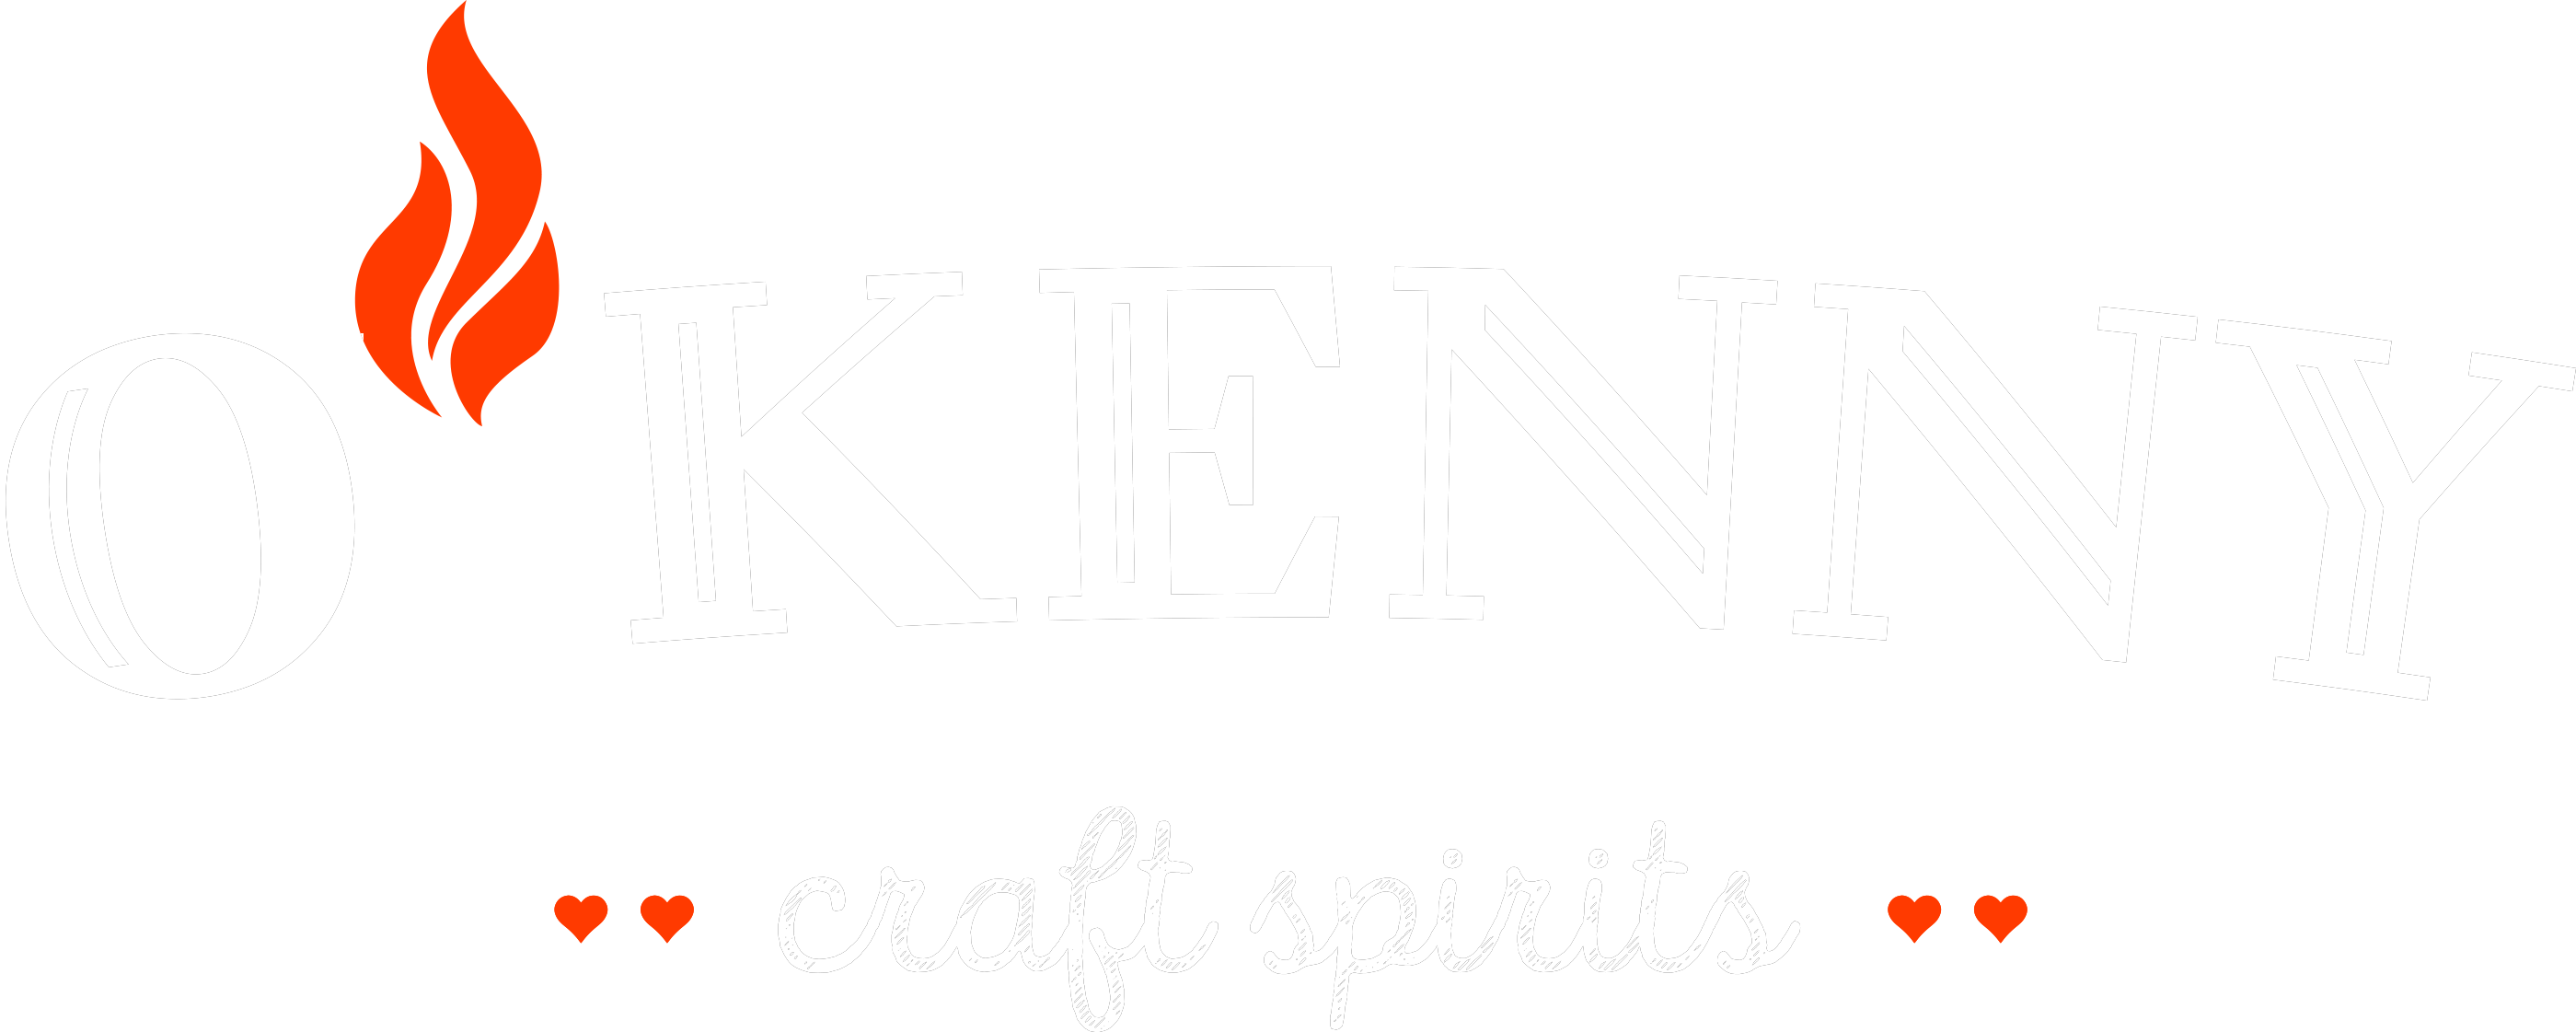 O'Kenny Craft Spirits